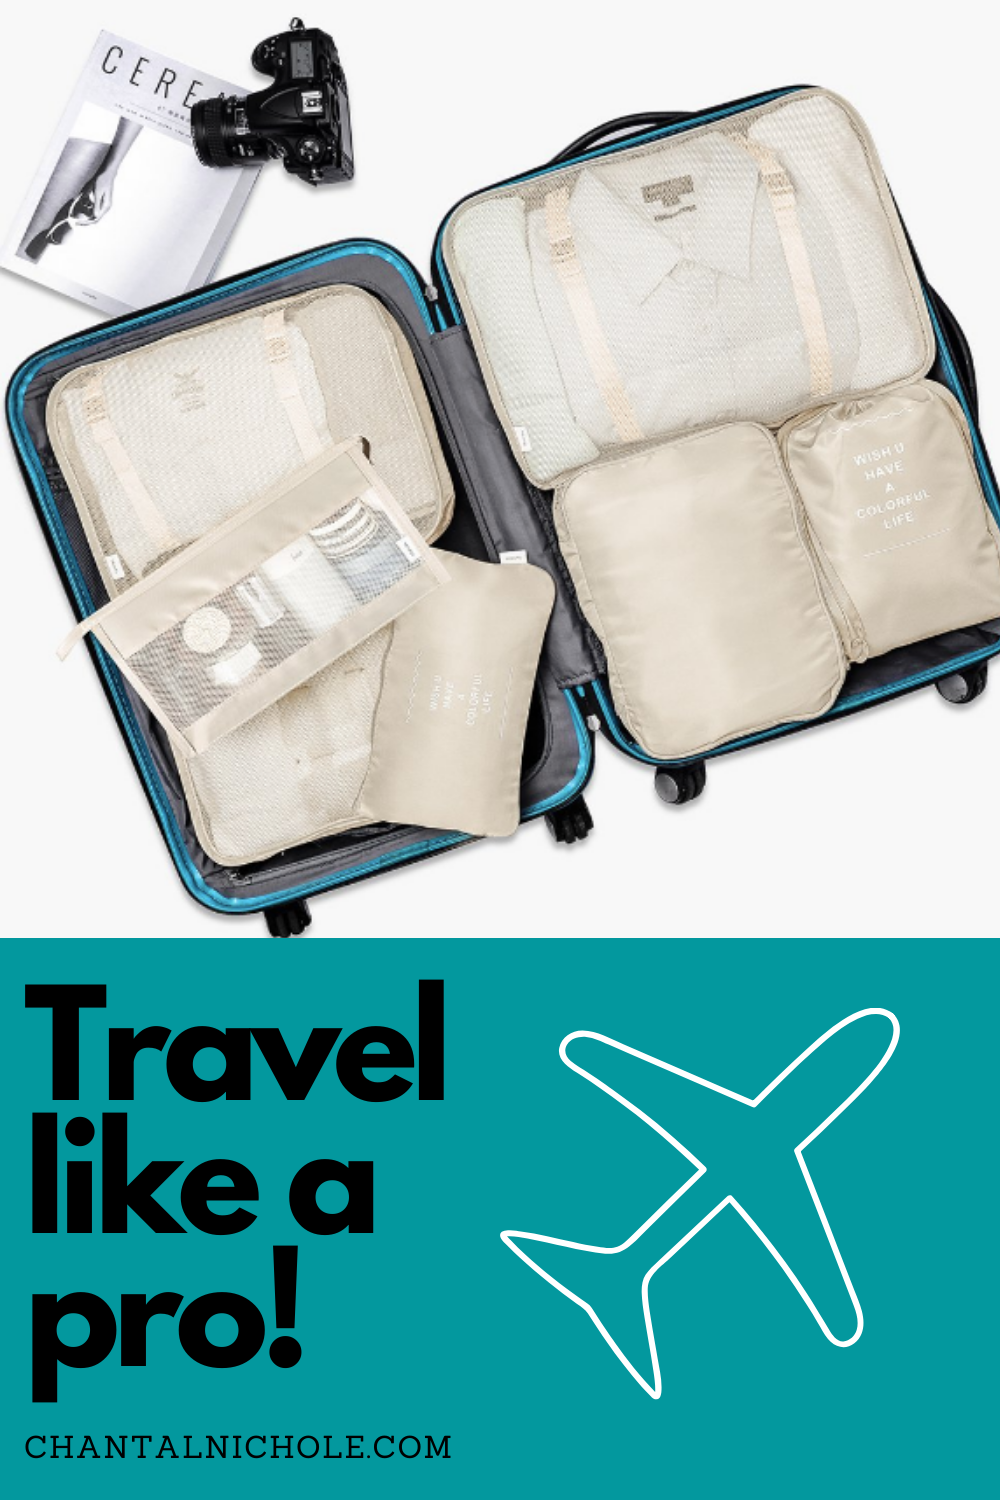 Learn how to pack and organize a carryon luggage. This blog will provide all the tips and tricks to pack for any destination. #carryon #packingtips #howtopack #organize #packlikeapro #travel #packing #pack